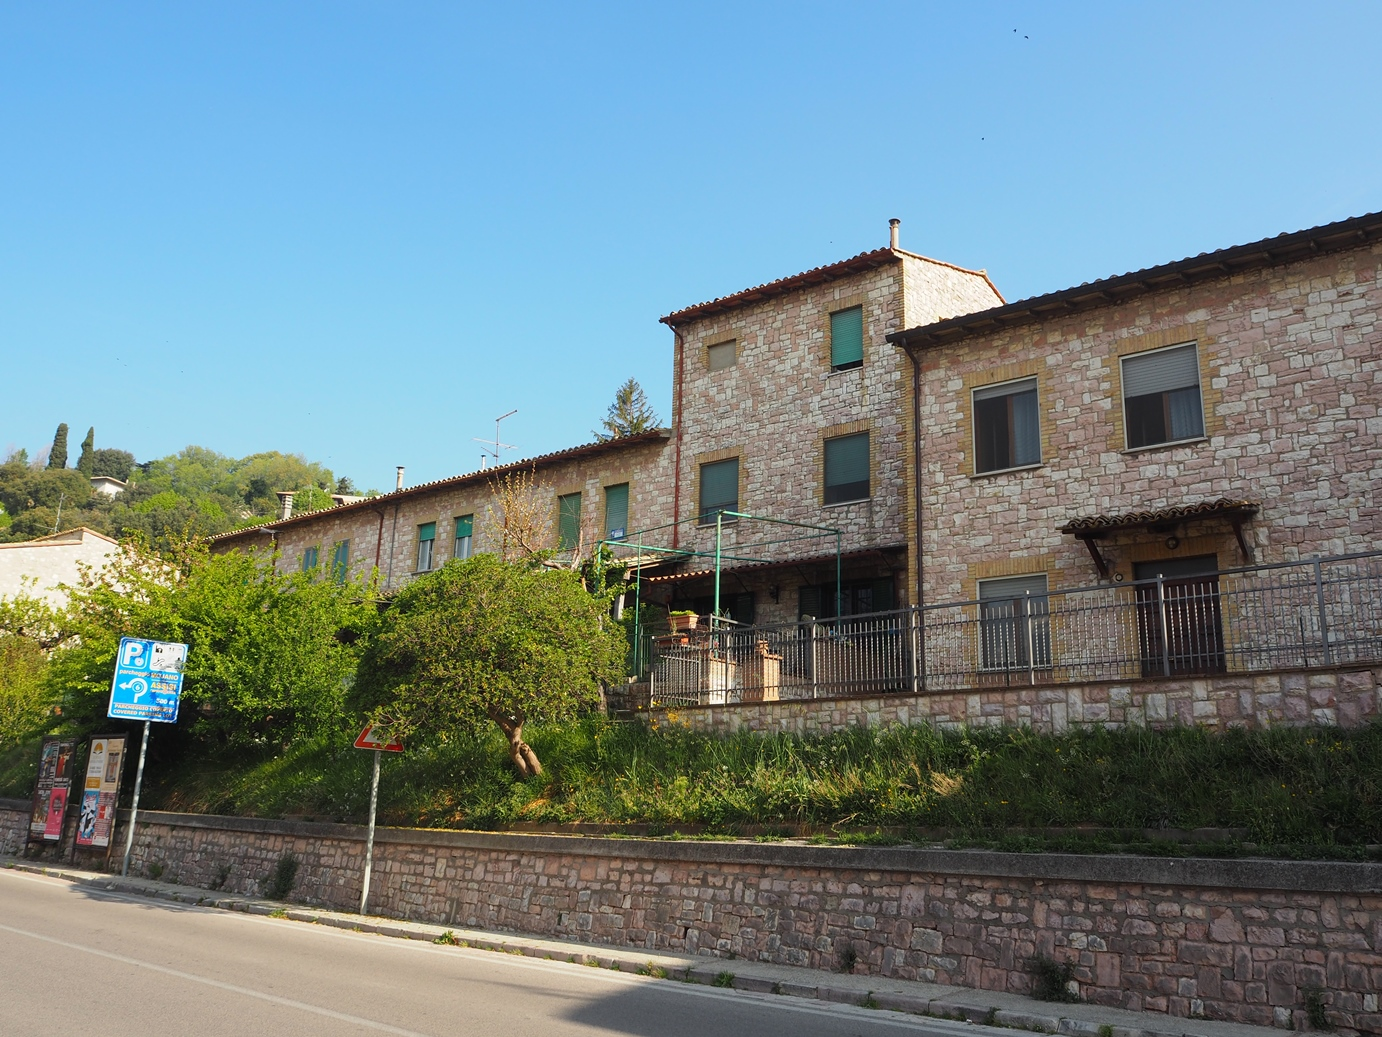 Vendita Casa Indipendente / Sell Detached House – Via Madonna dell'Olivo